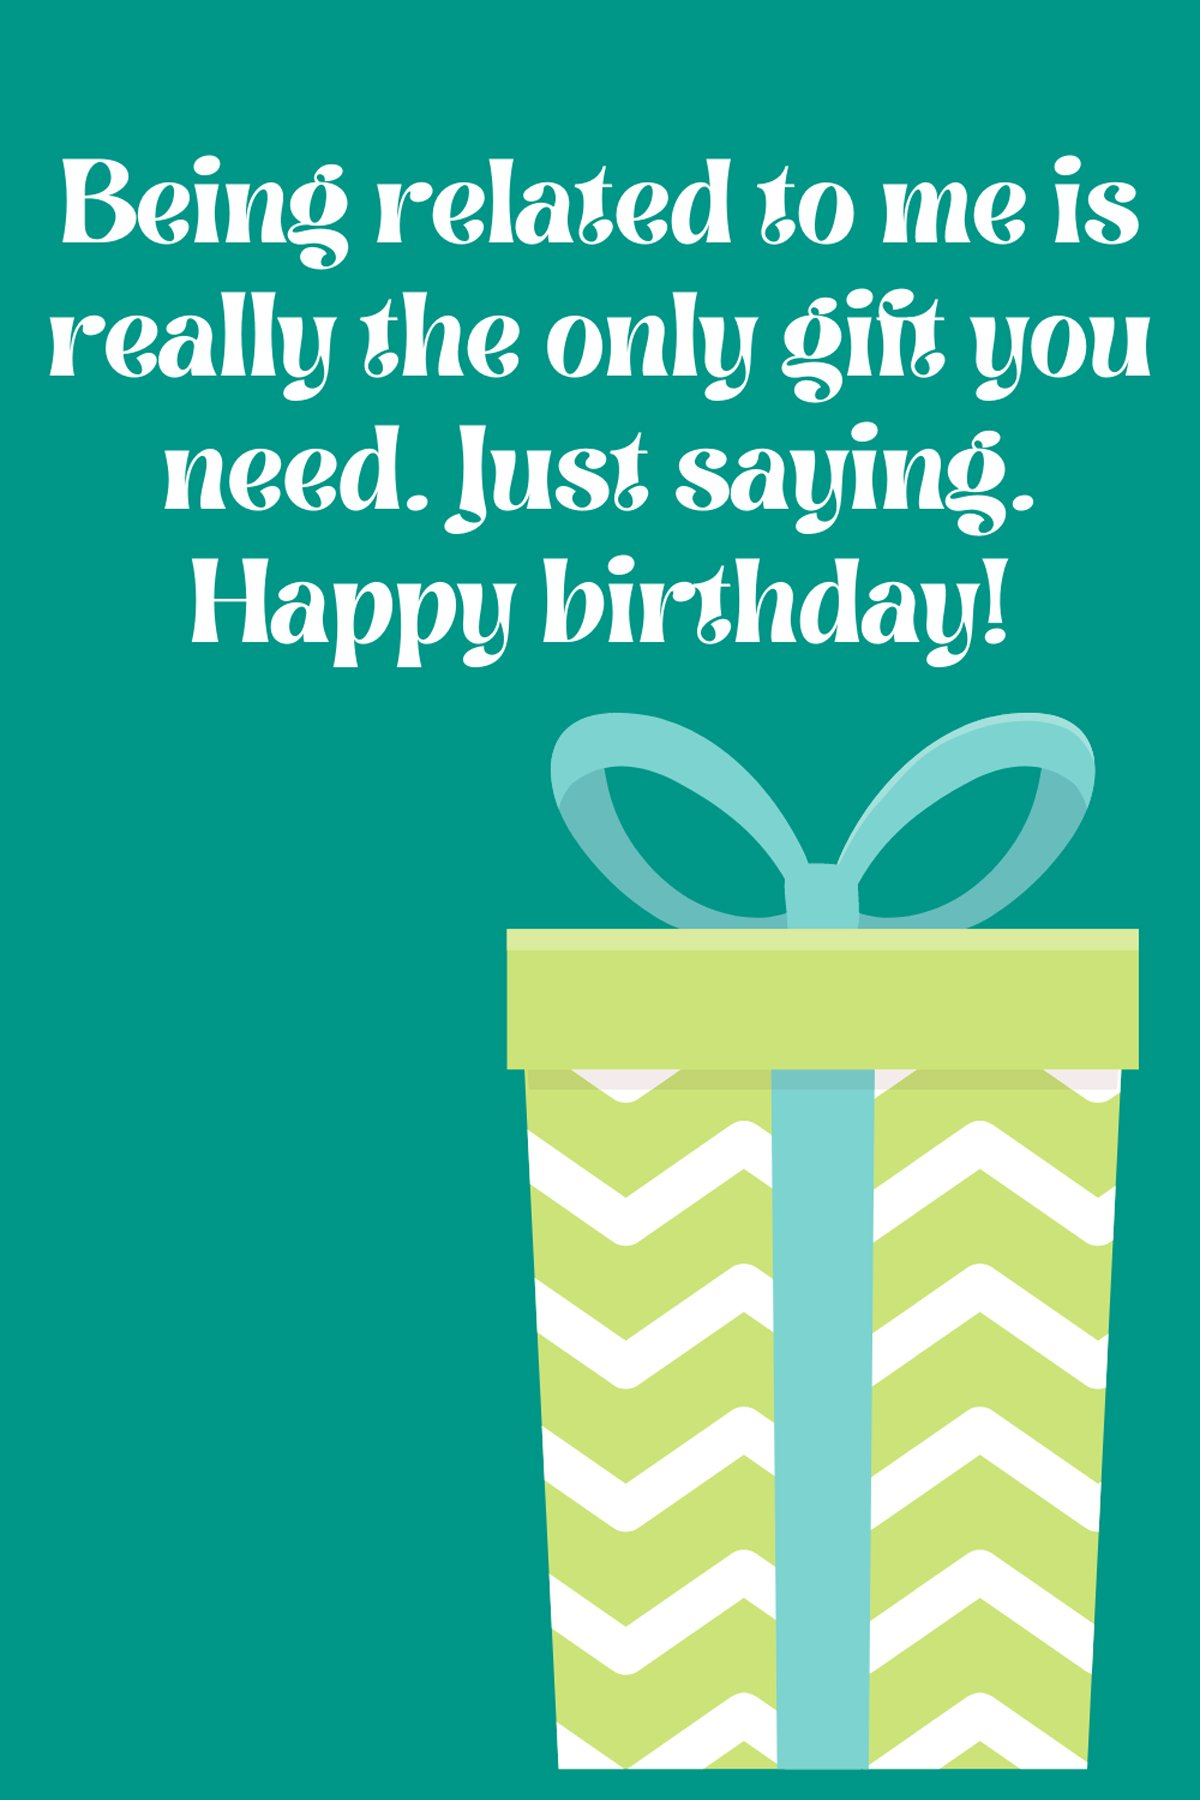 Quotes for Brothers birthday card